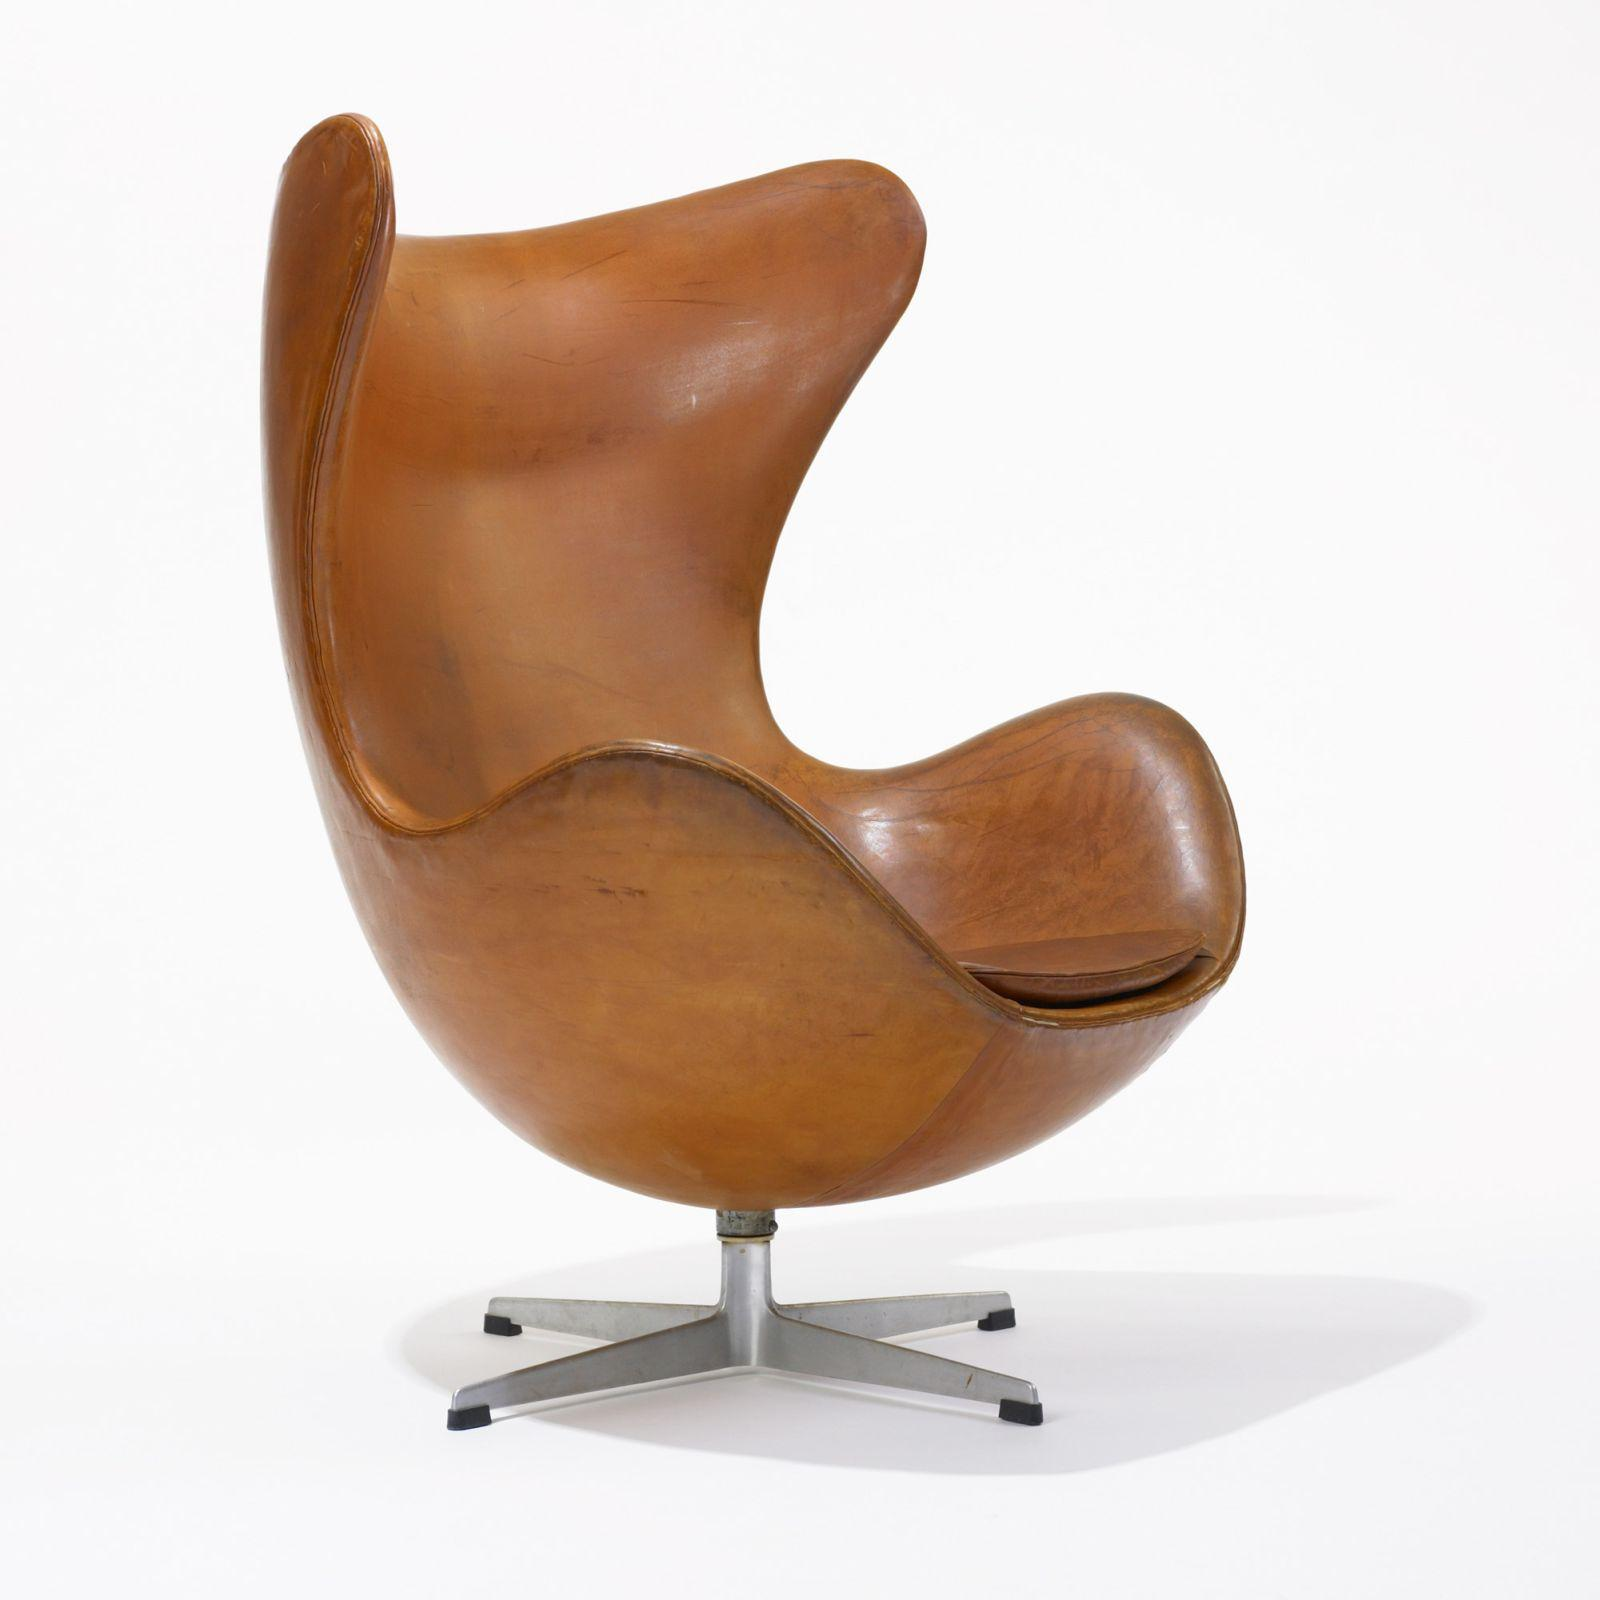 Danish Chair Plans Danish And Scandinavian Design Mod Restoration